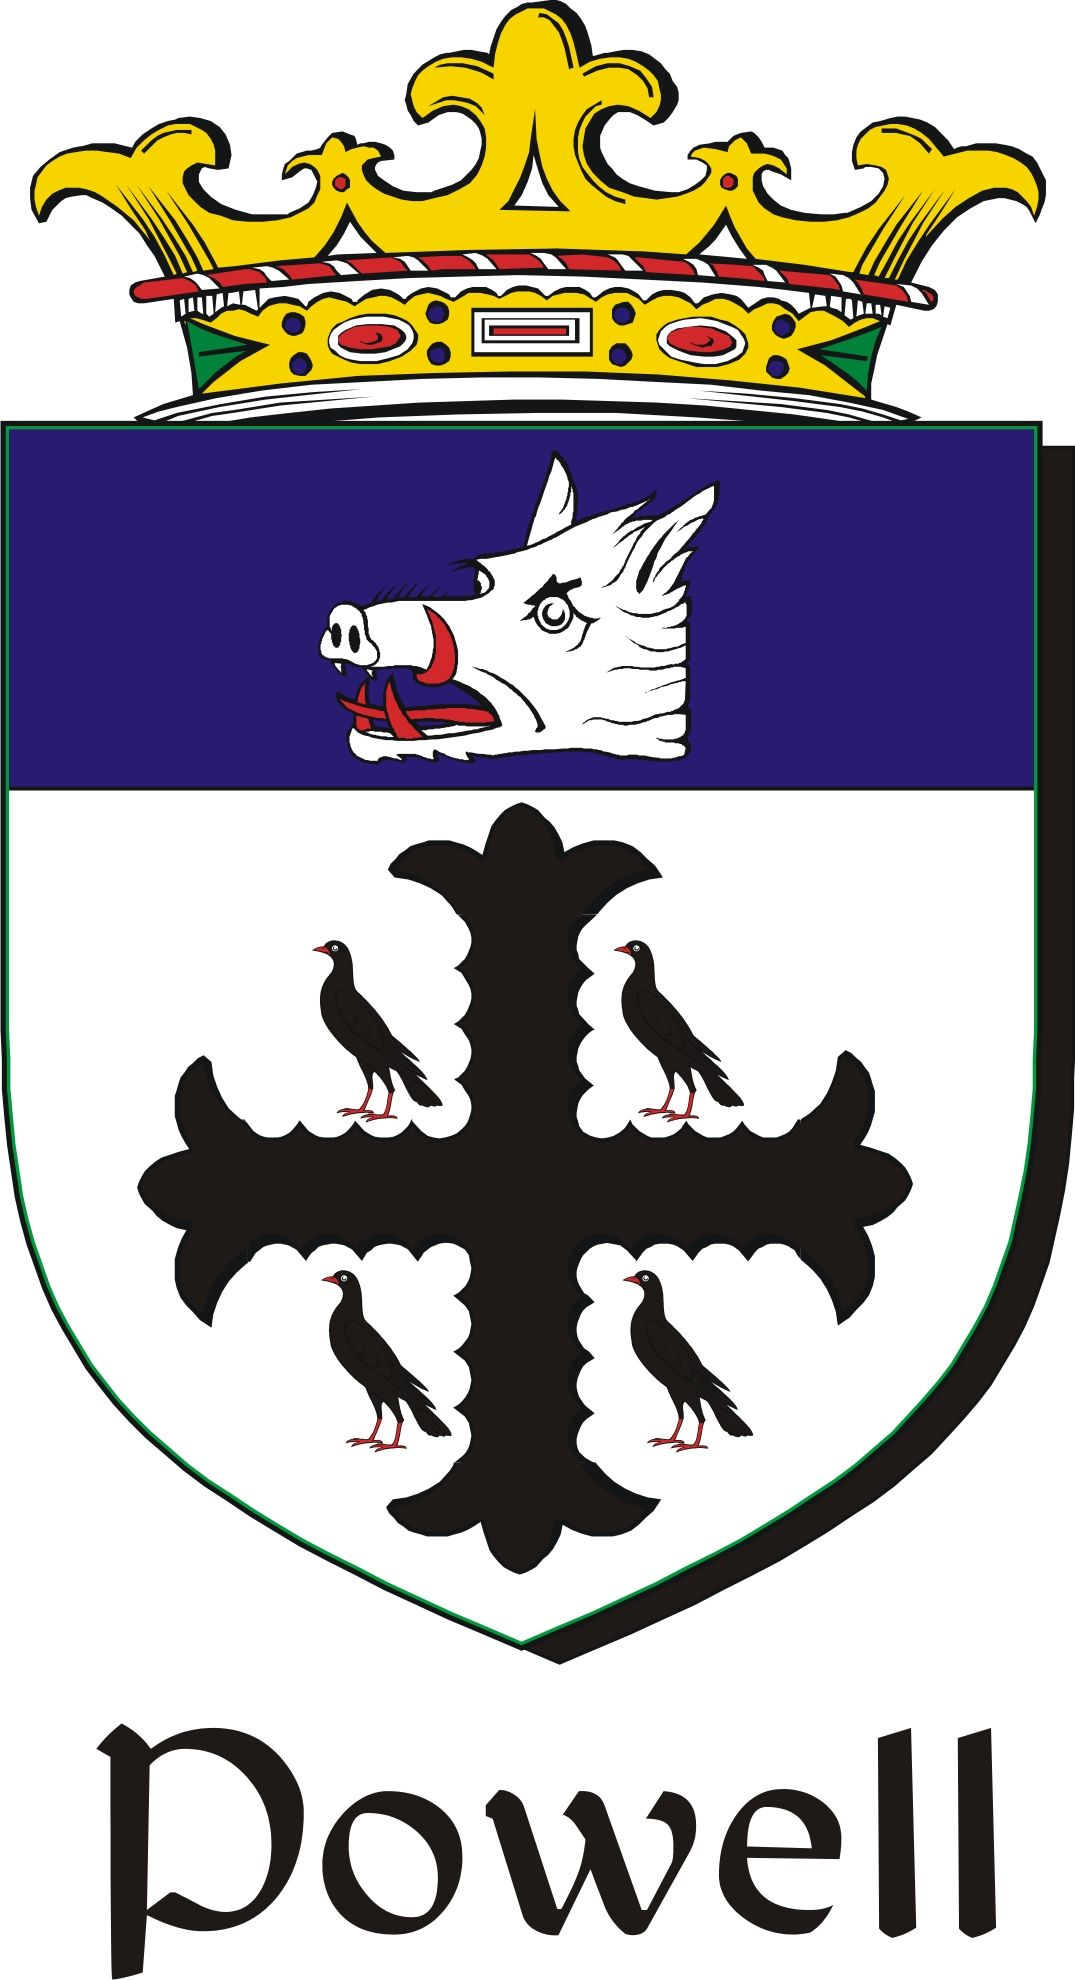 Family crests download royalty free photo purcell family crest i family crests download royalty free photo purcell family crest i buycottarizona Images